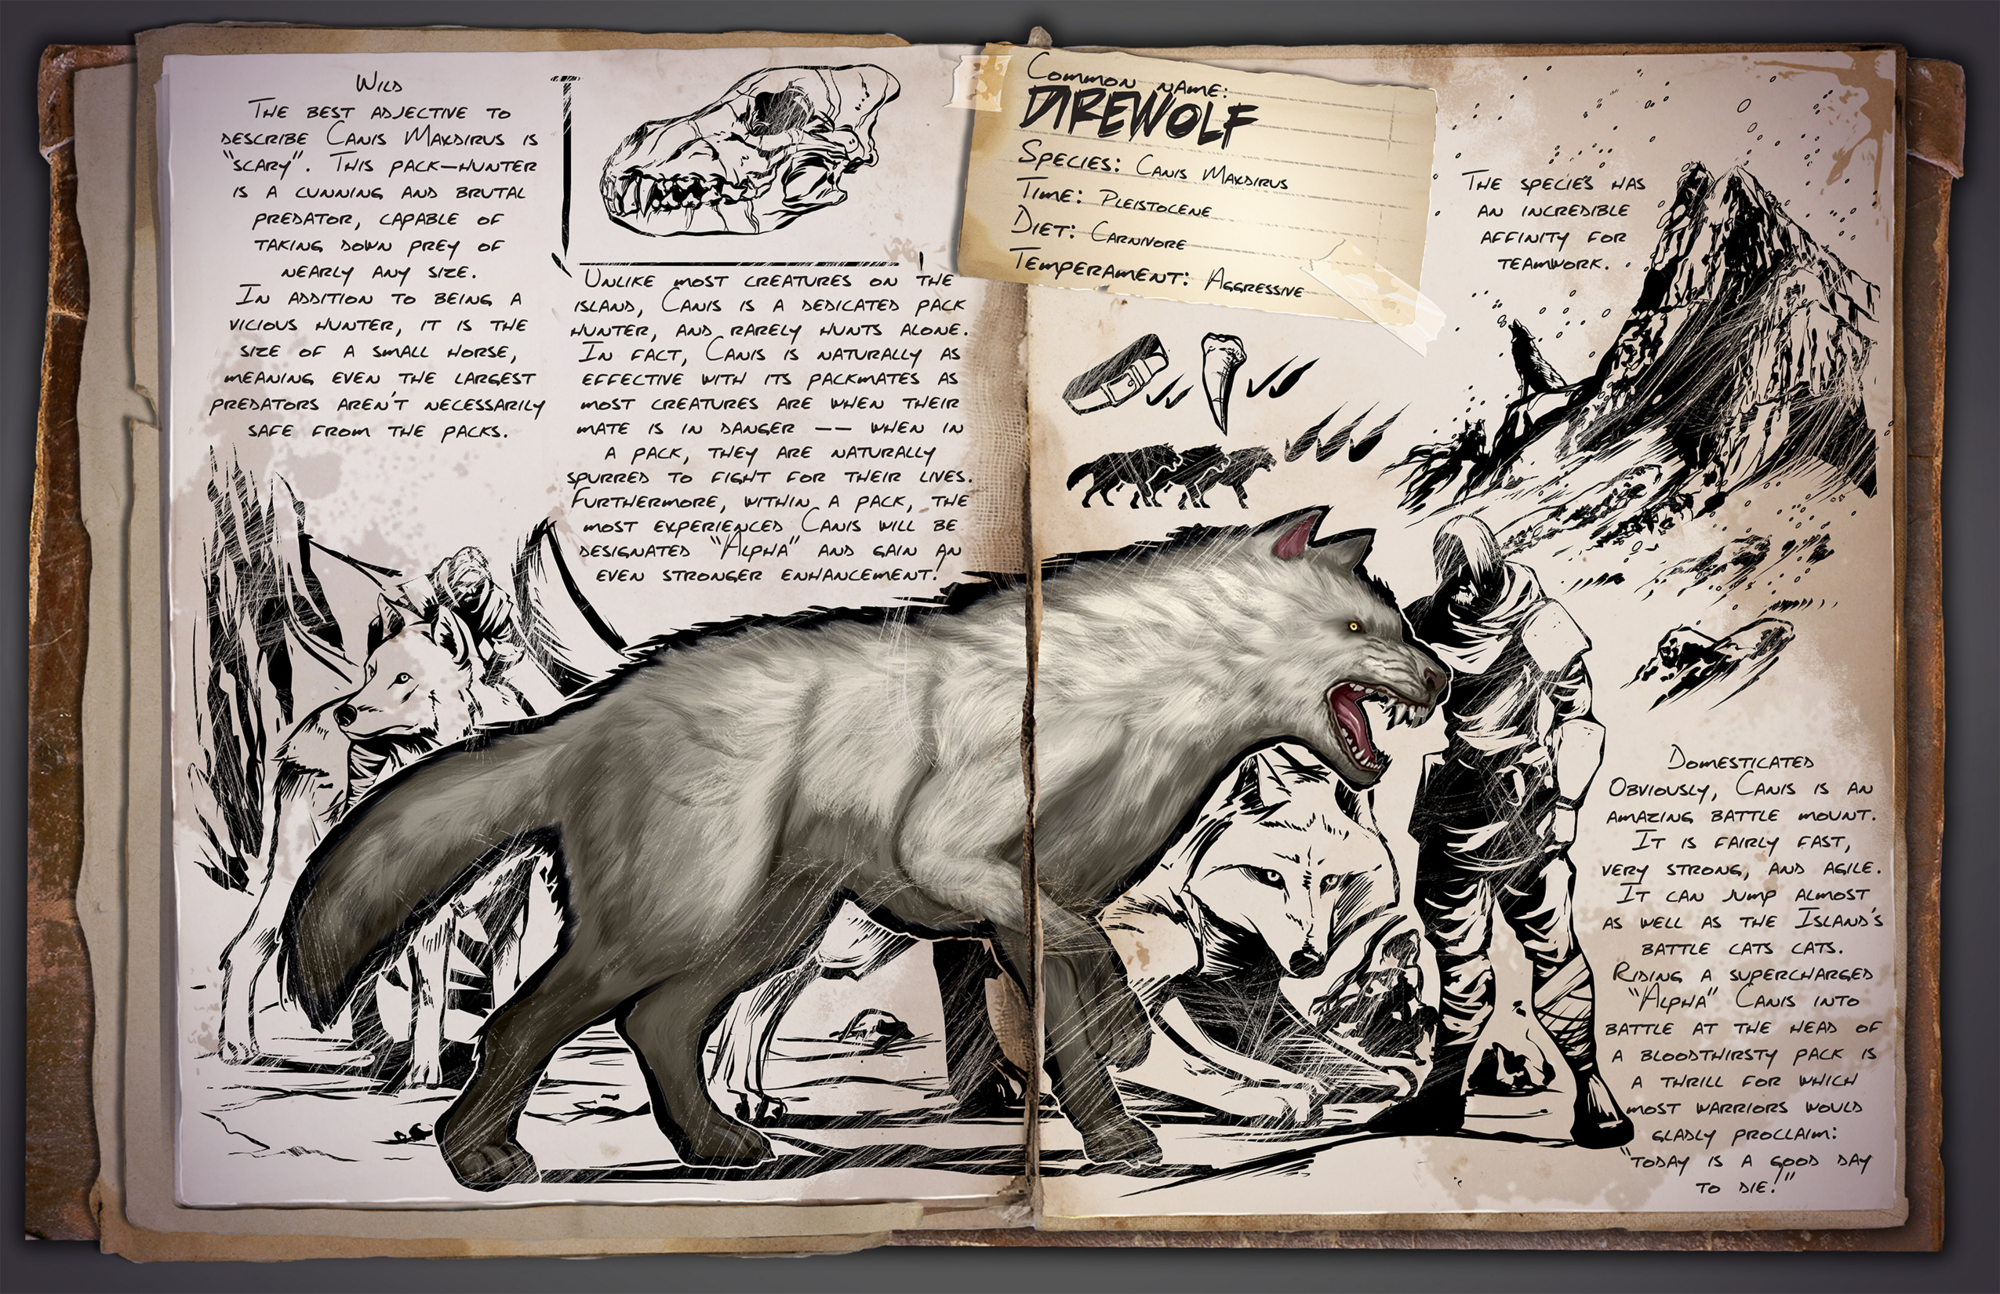 Direwolf | ARK: Survival Evolved Wiki | FANDOM powered by Wikia